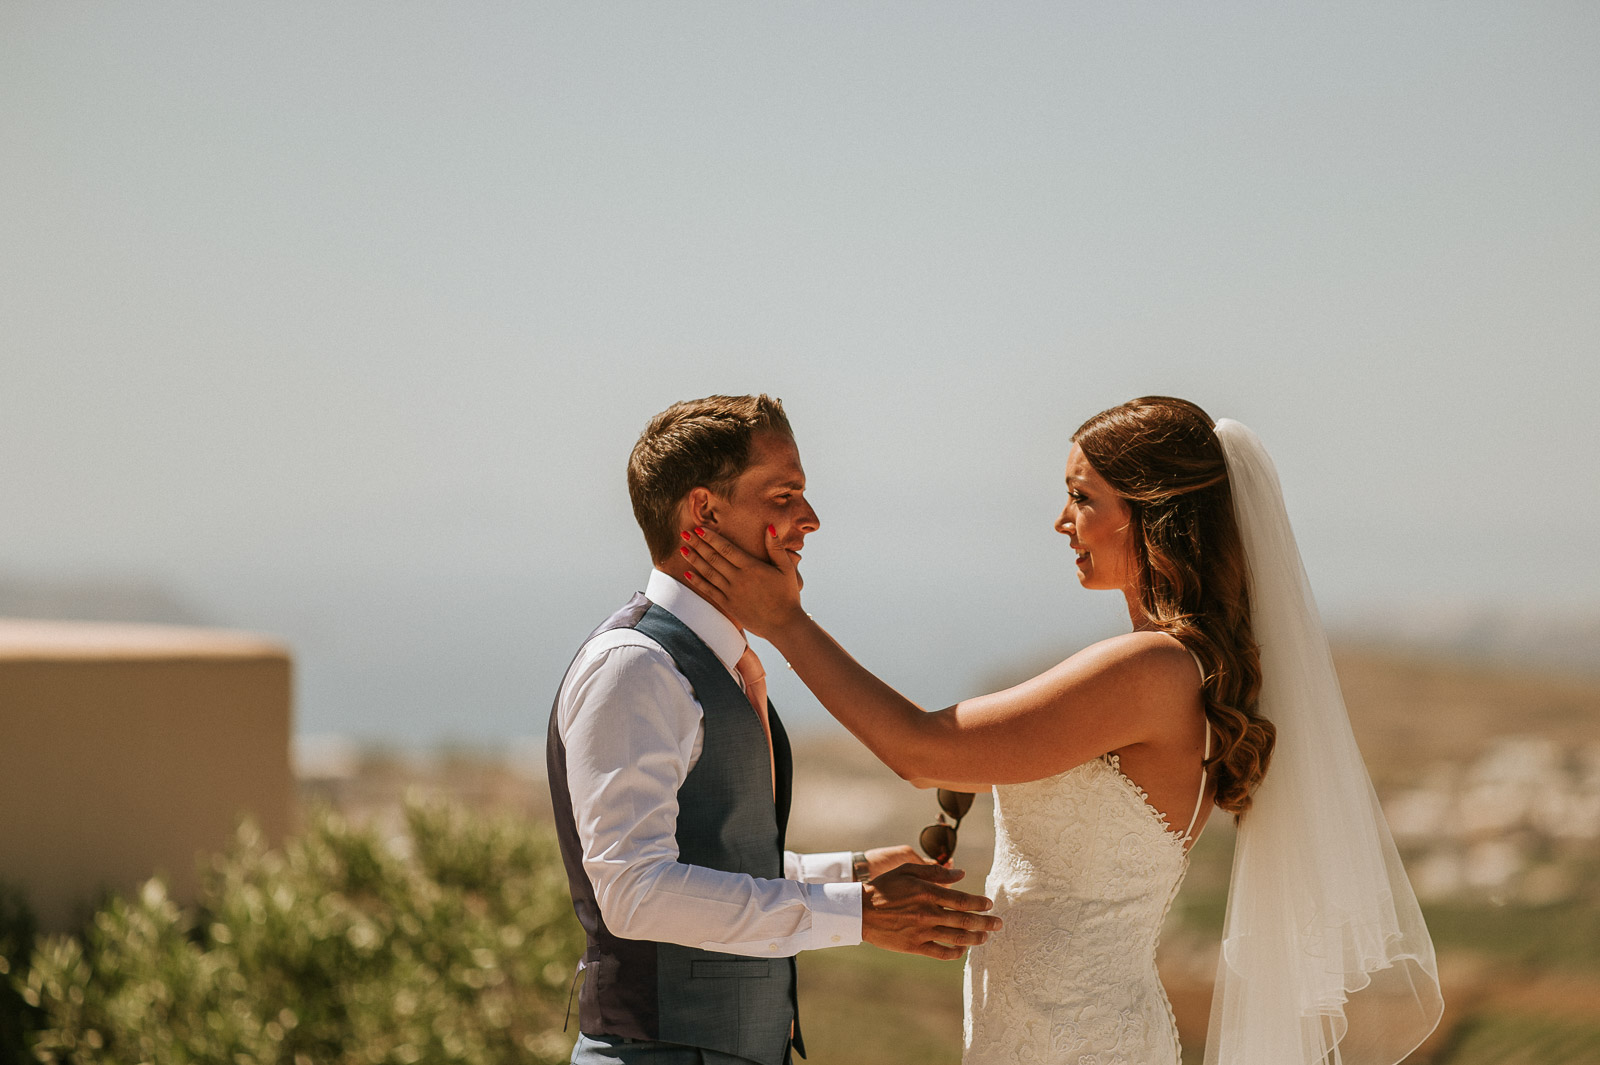 Santorini-Wedding-Photographer-Greece-Destination-Weddings-Mait-Juriado-M&J-Studios-031